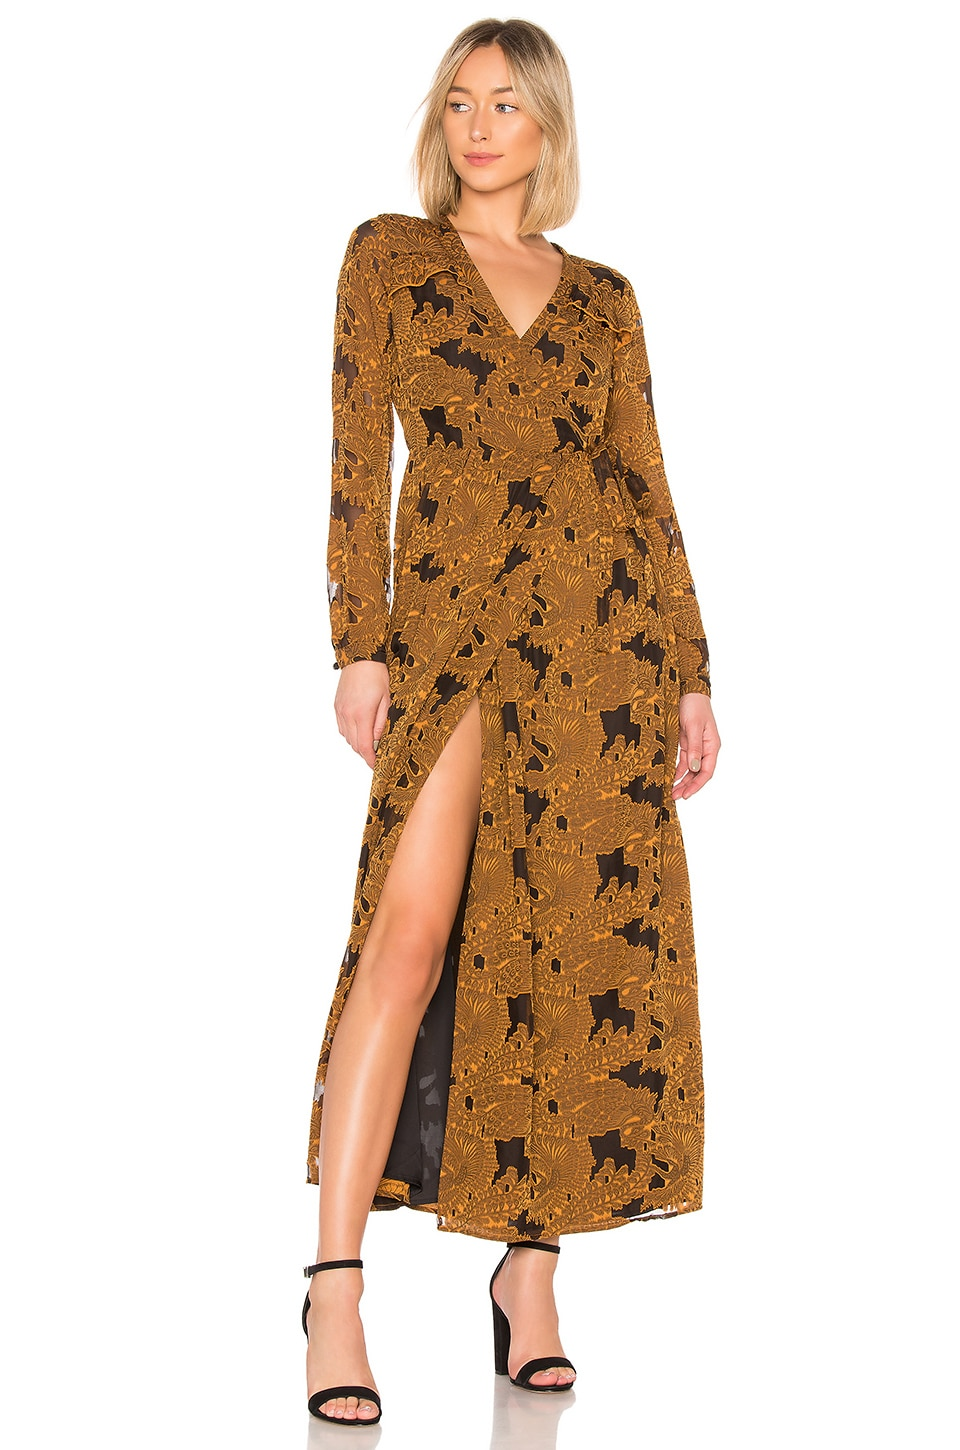 House of Harlow 1960 x REVOLVE Margareta Dress in Mustard